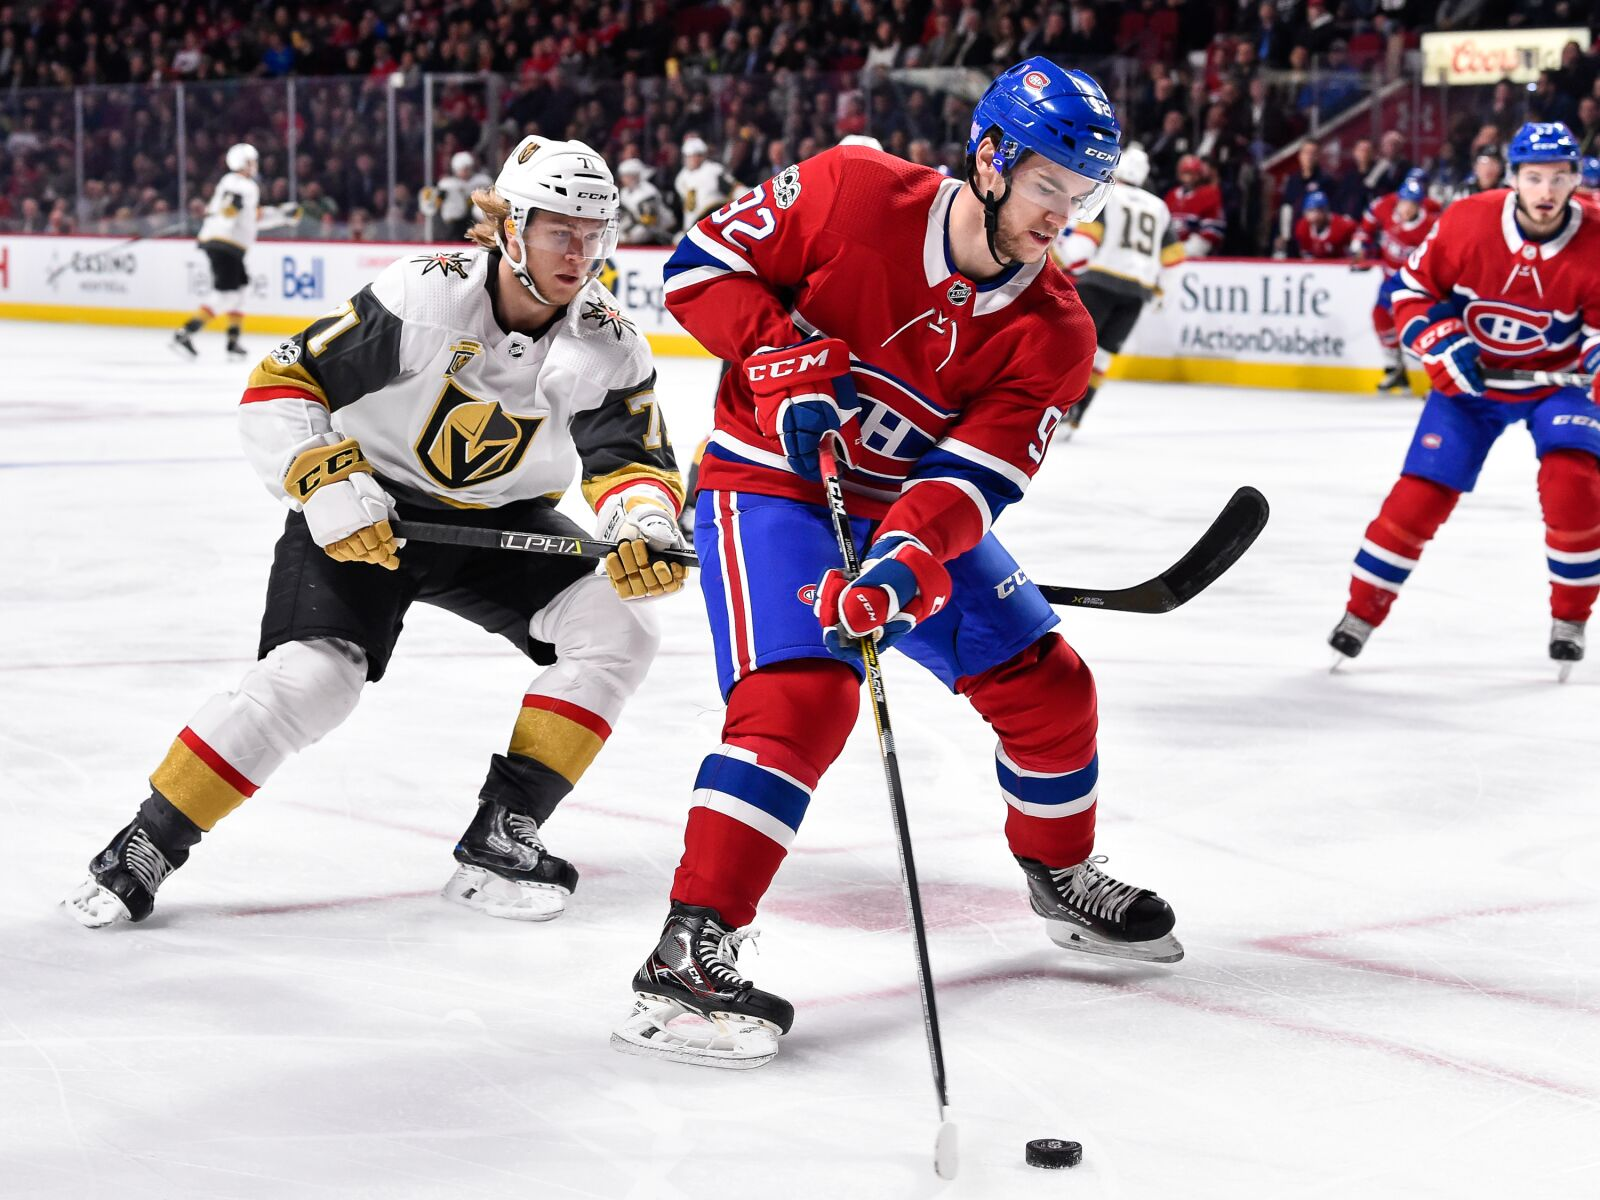 872869986-vegas-golden-knights-v-montreal-canadiens.jpg